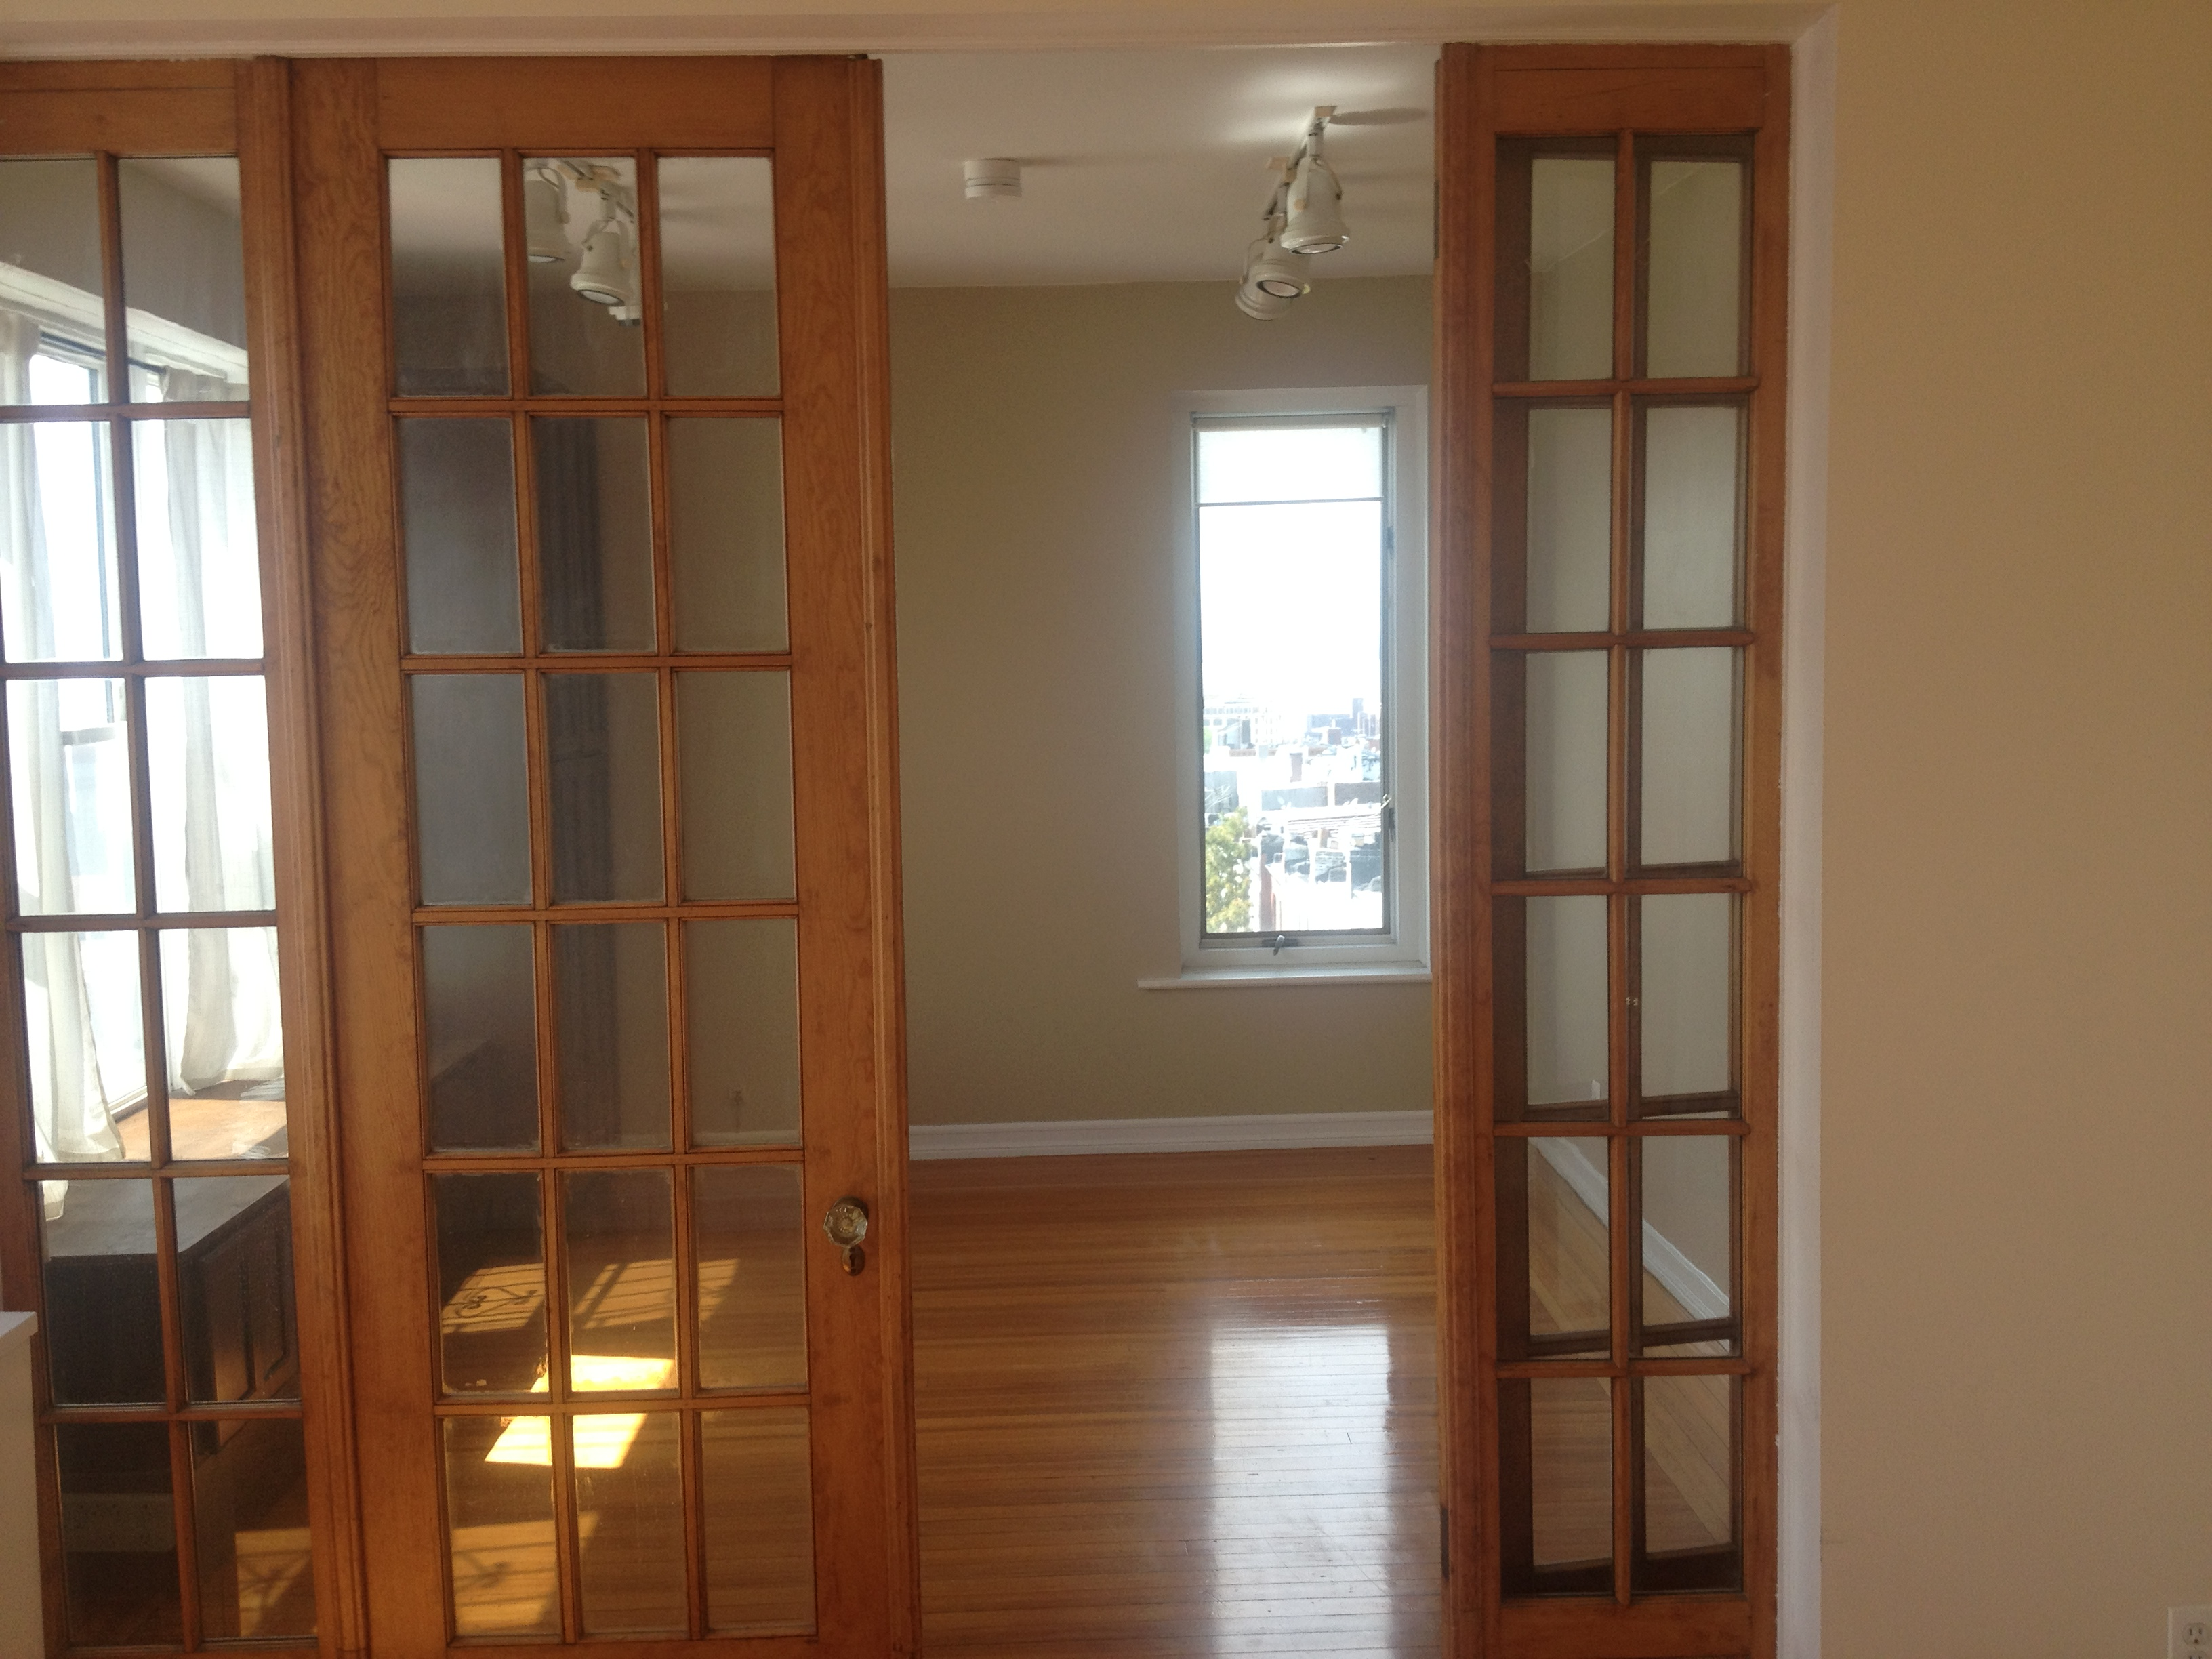 Kitchen cabinets sunset park brooklyn - Completely Mint 2 Bedroom Apartment In Finnish Co Op For 1 600 In Sunset Park Brooklyn Amazing Views From Every Window French Doors Beautiful Woodwoork